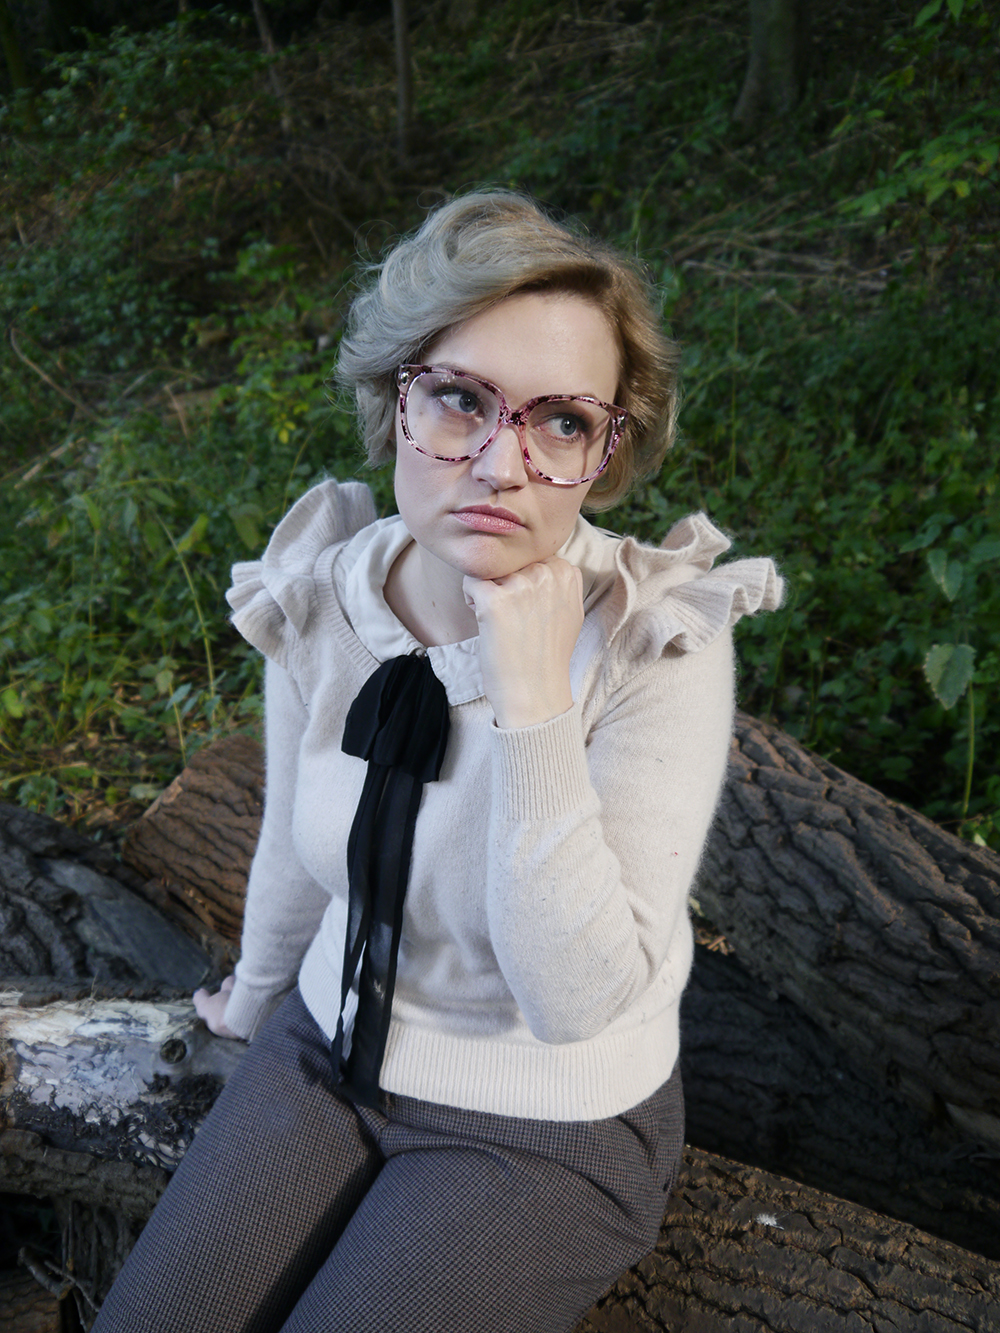 Barb Stranger Things costume, Edinburgh photo location woods, Stranger Things fashion style, blogger favourite halloween outfit, easy 80s style, Halloween 2016 costumes, unlikely style icon, barb stranger things style, Stranger Things Barb hairstyle